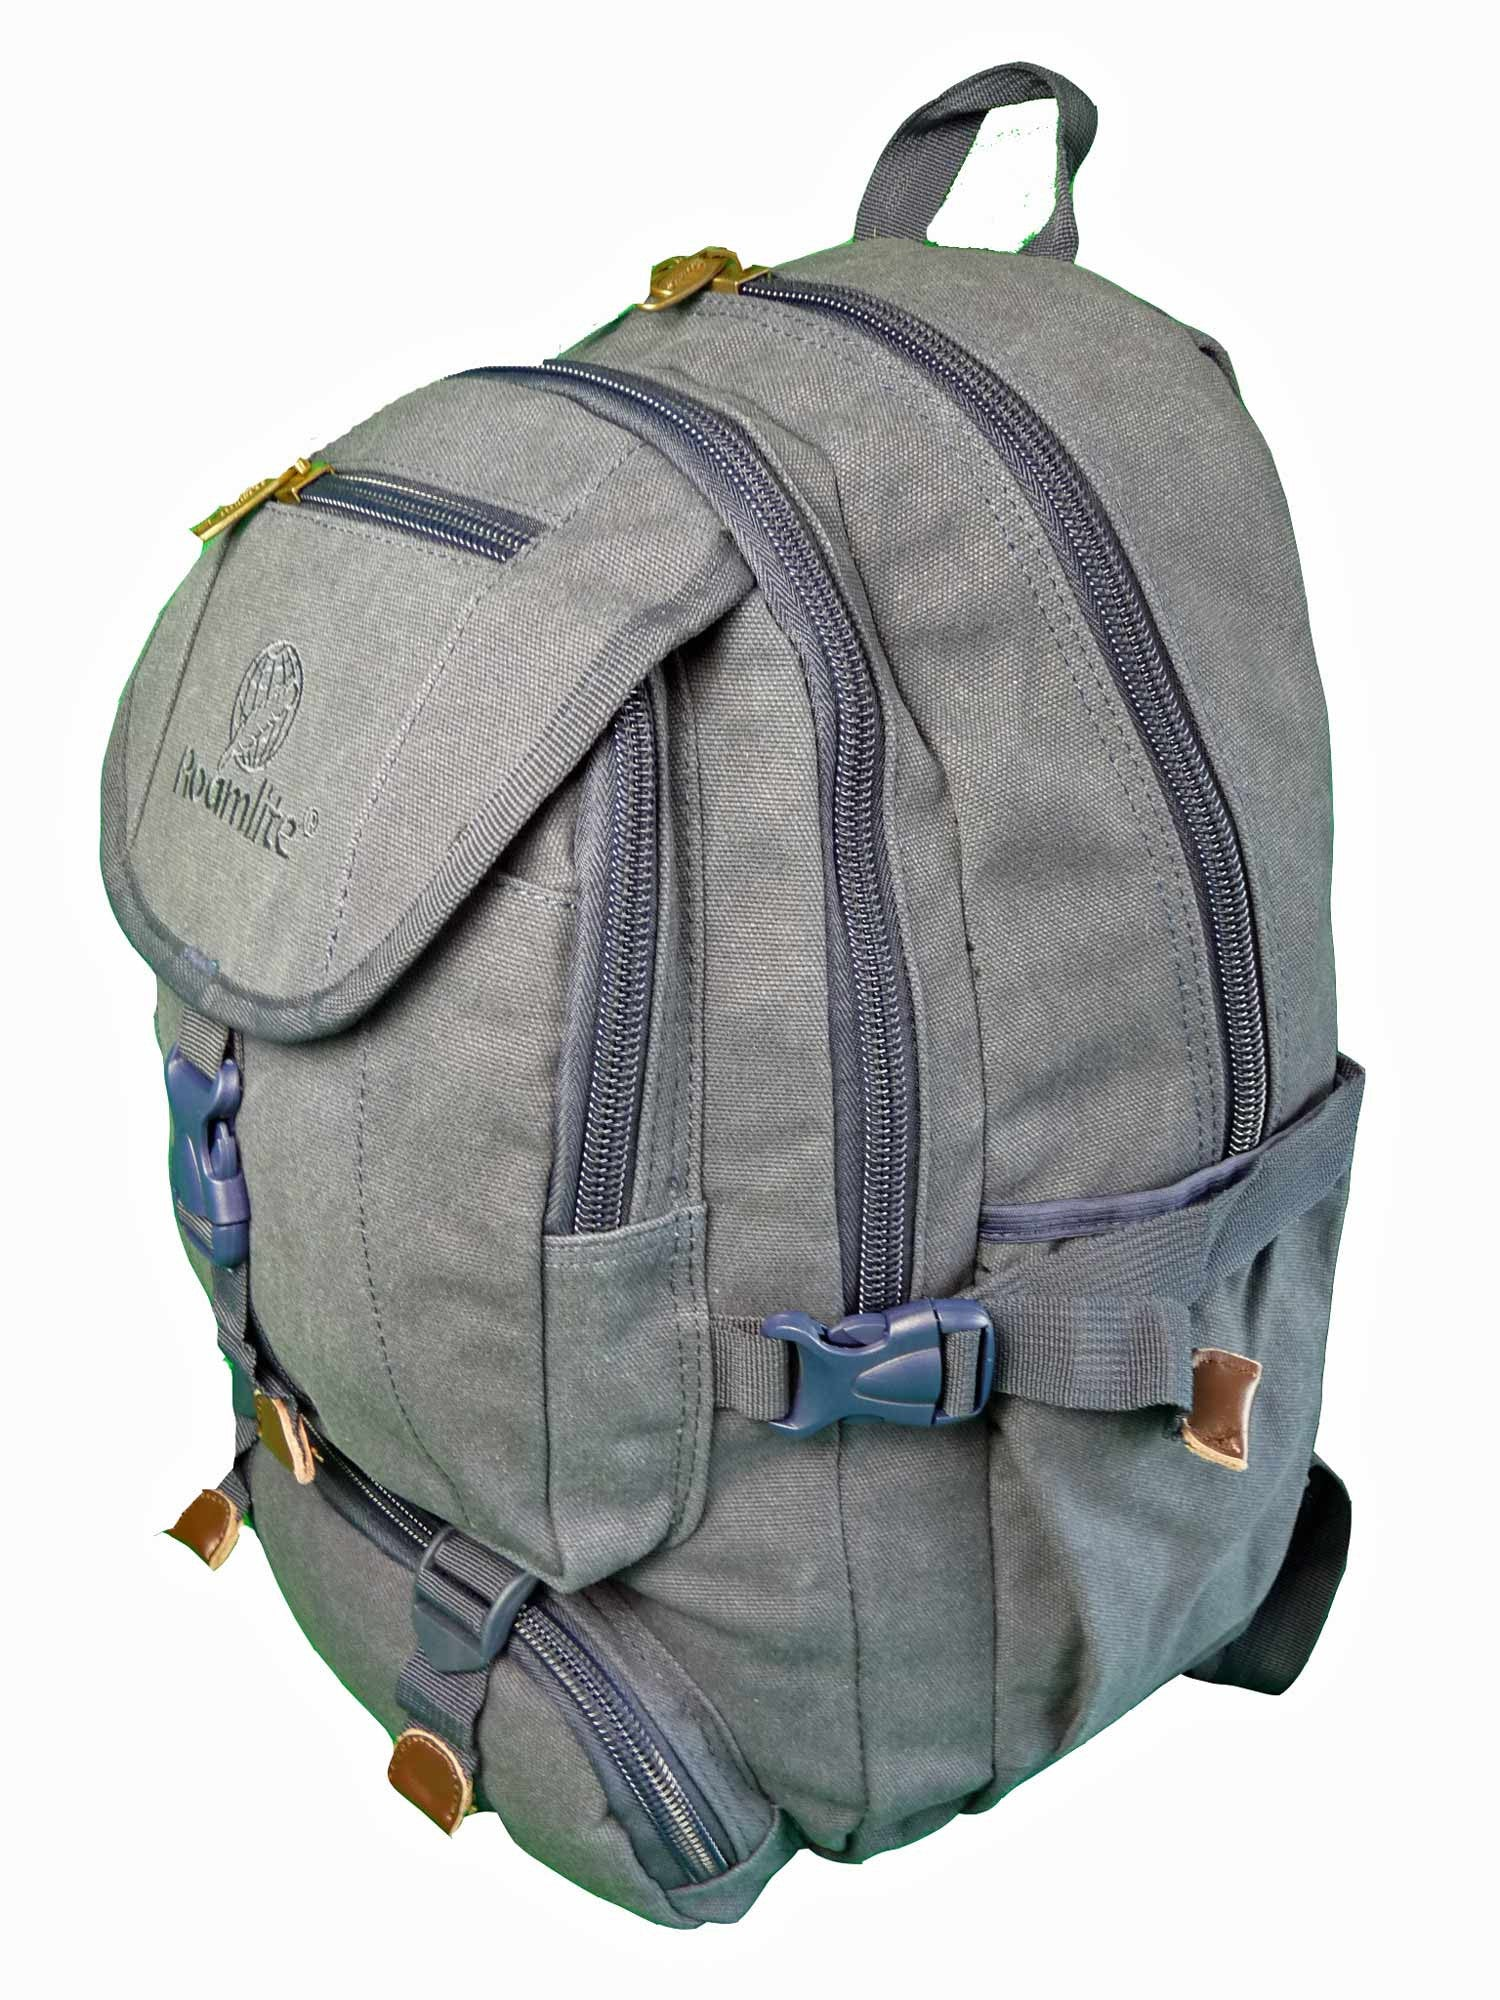 MacBook Air Backpack Rucksack Bag RL25N side view